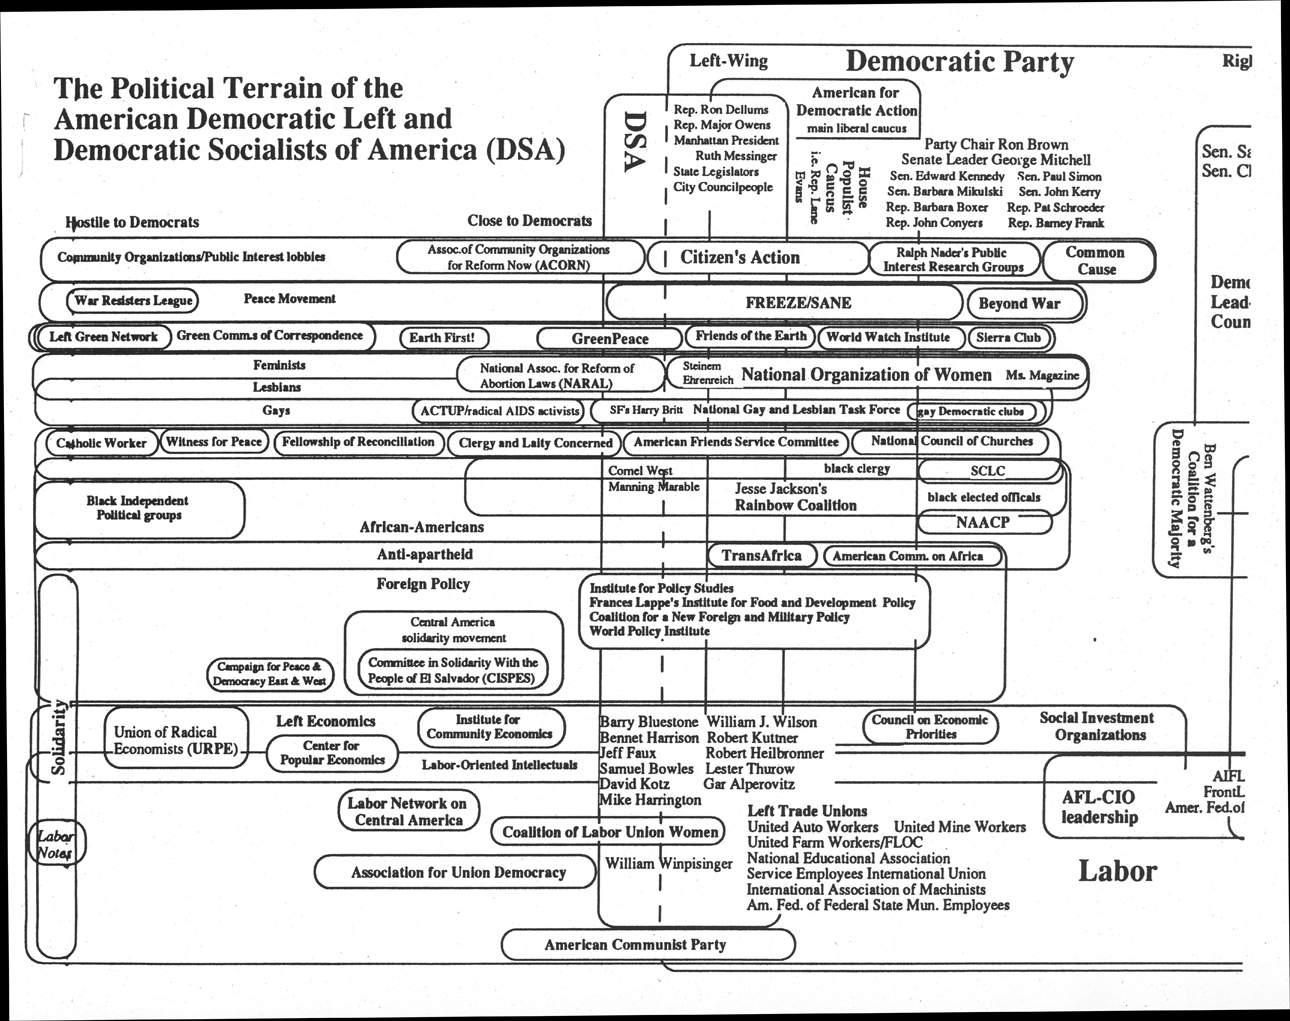 Document from the 1970's detailing the political terrain of political groups in the American Left. Sourced from Political Extremism and Radicalism in the 20th Century: Far Right and Left Political Groups in the US, Europe, and Australia a groundbreaking digital collection of primary source documents that allows researchers to explore the development, actions and ideologies behind 20th century extremism and radicalism.